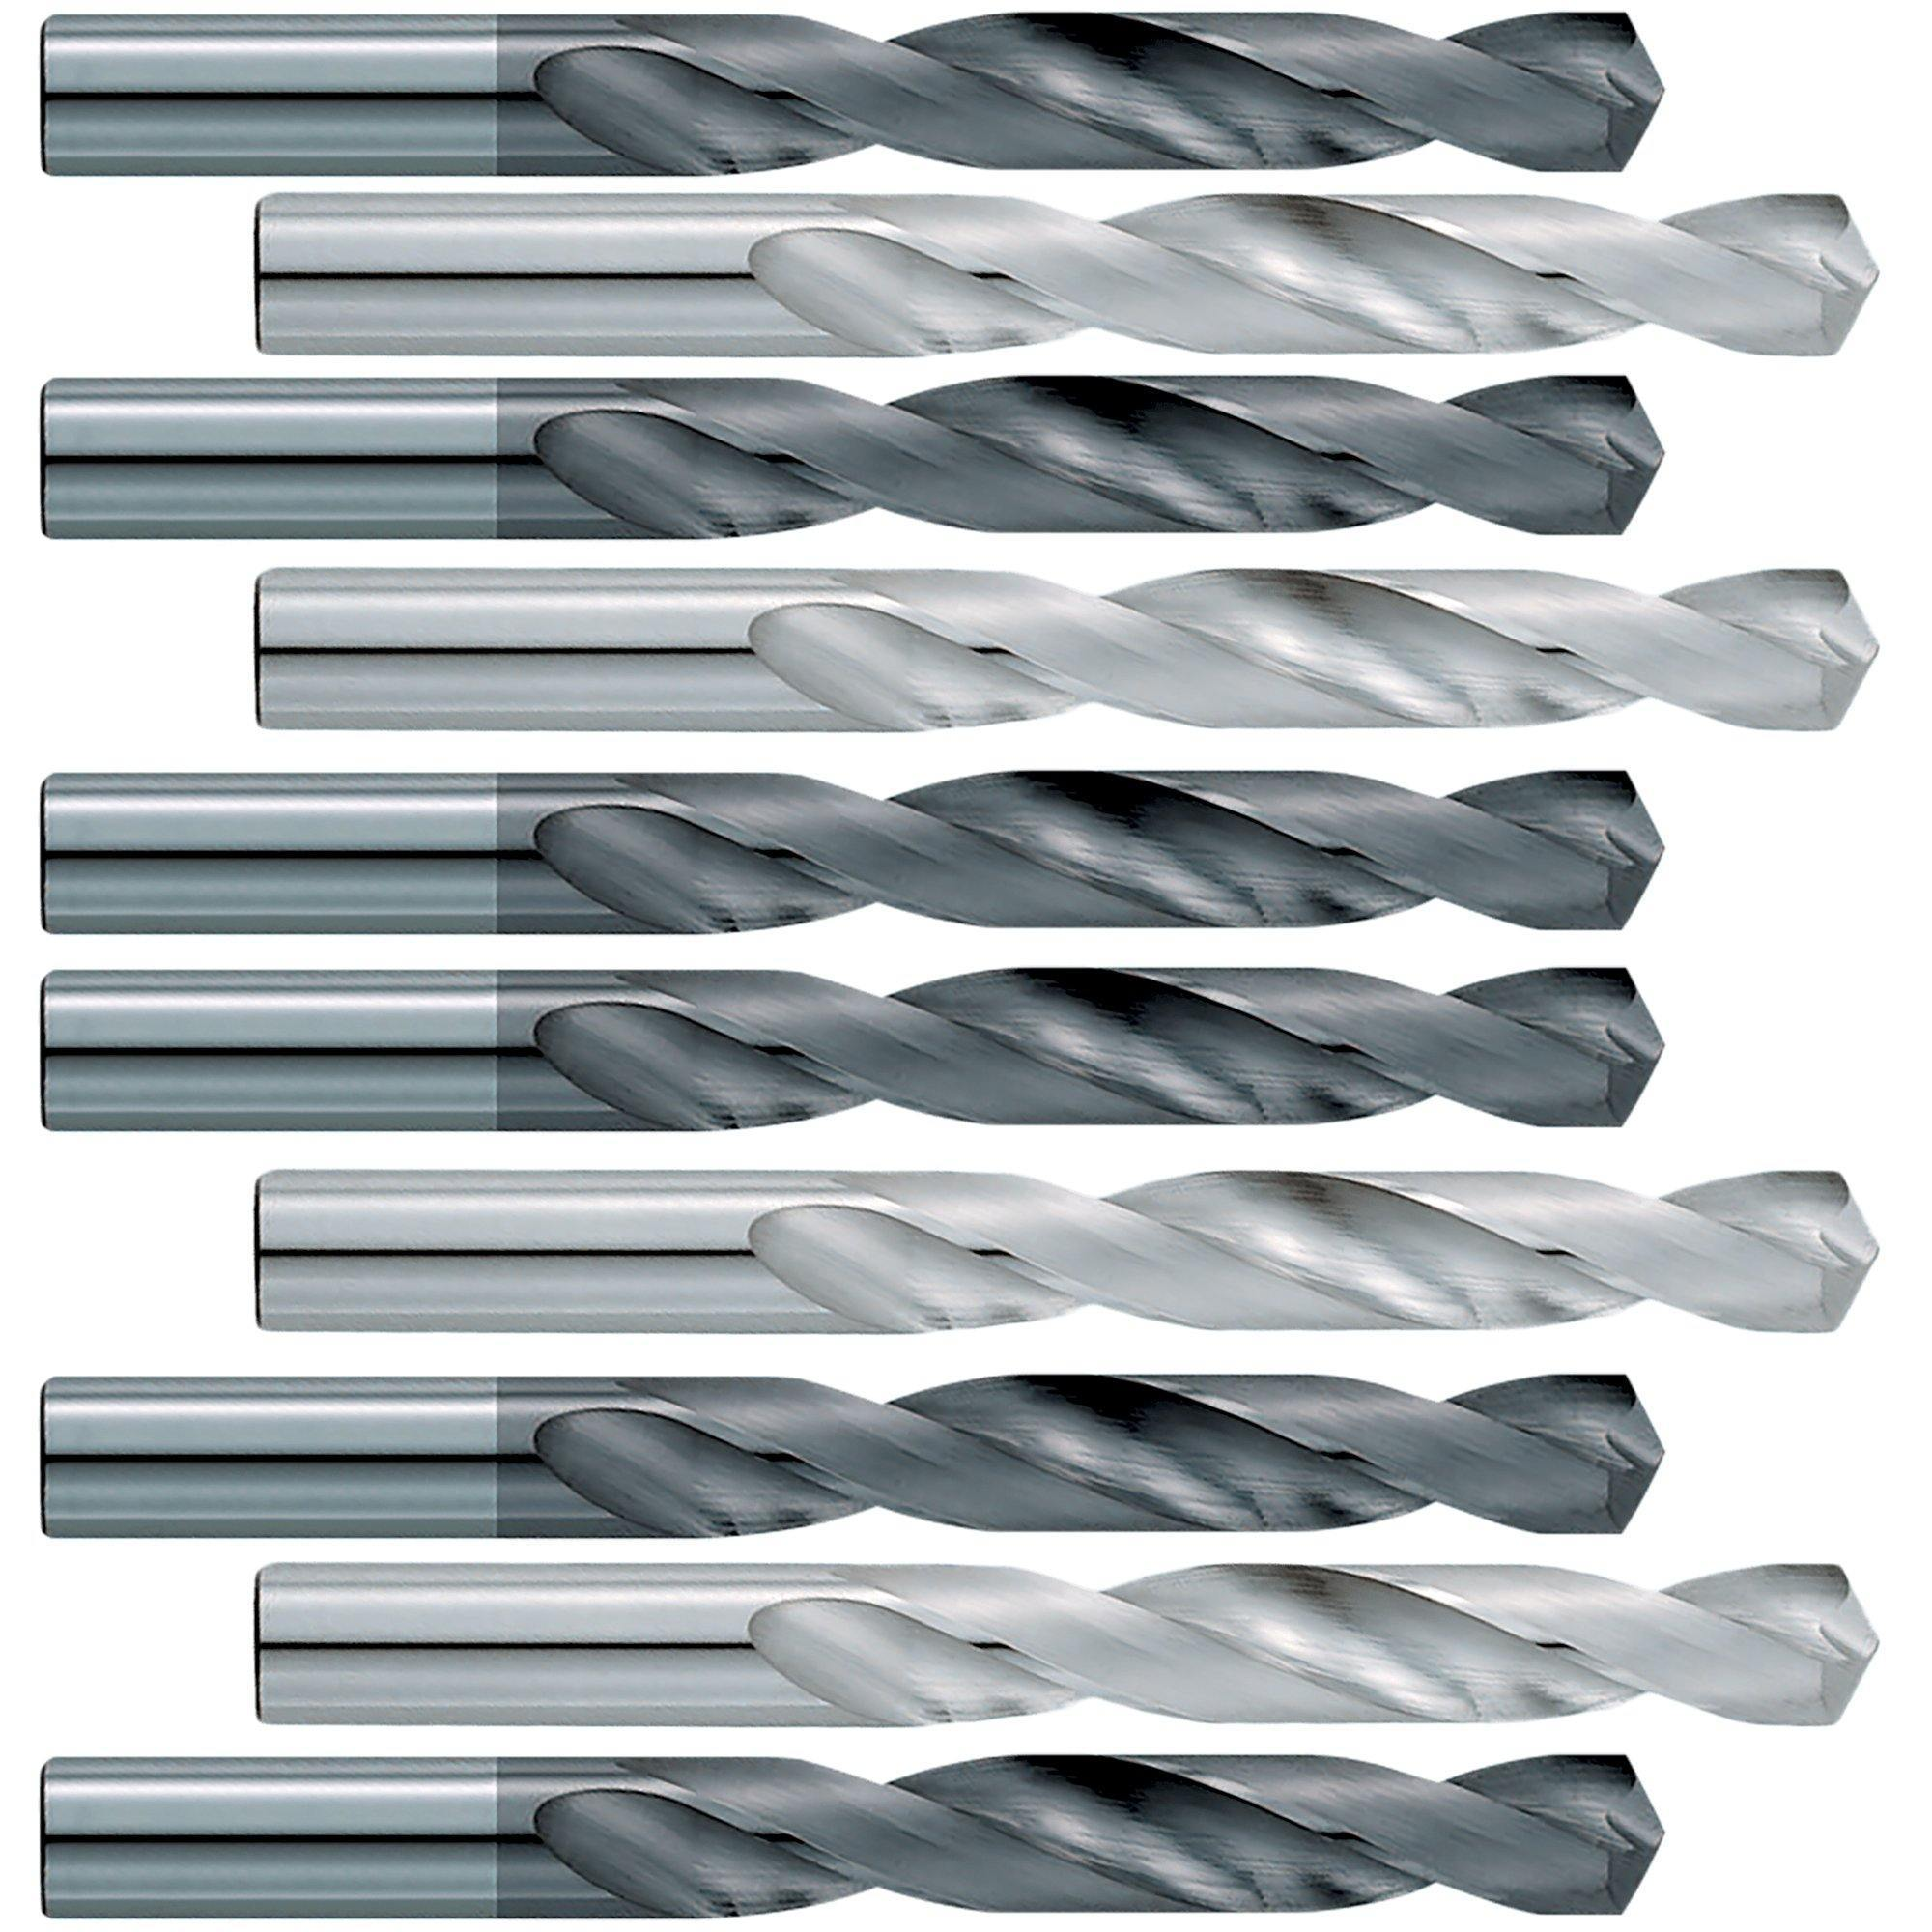 #34  (10 Pack)  .111 Jobber Length Carbide Drill Bits - End Mill Store